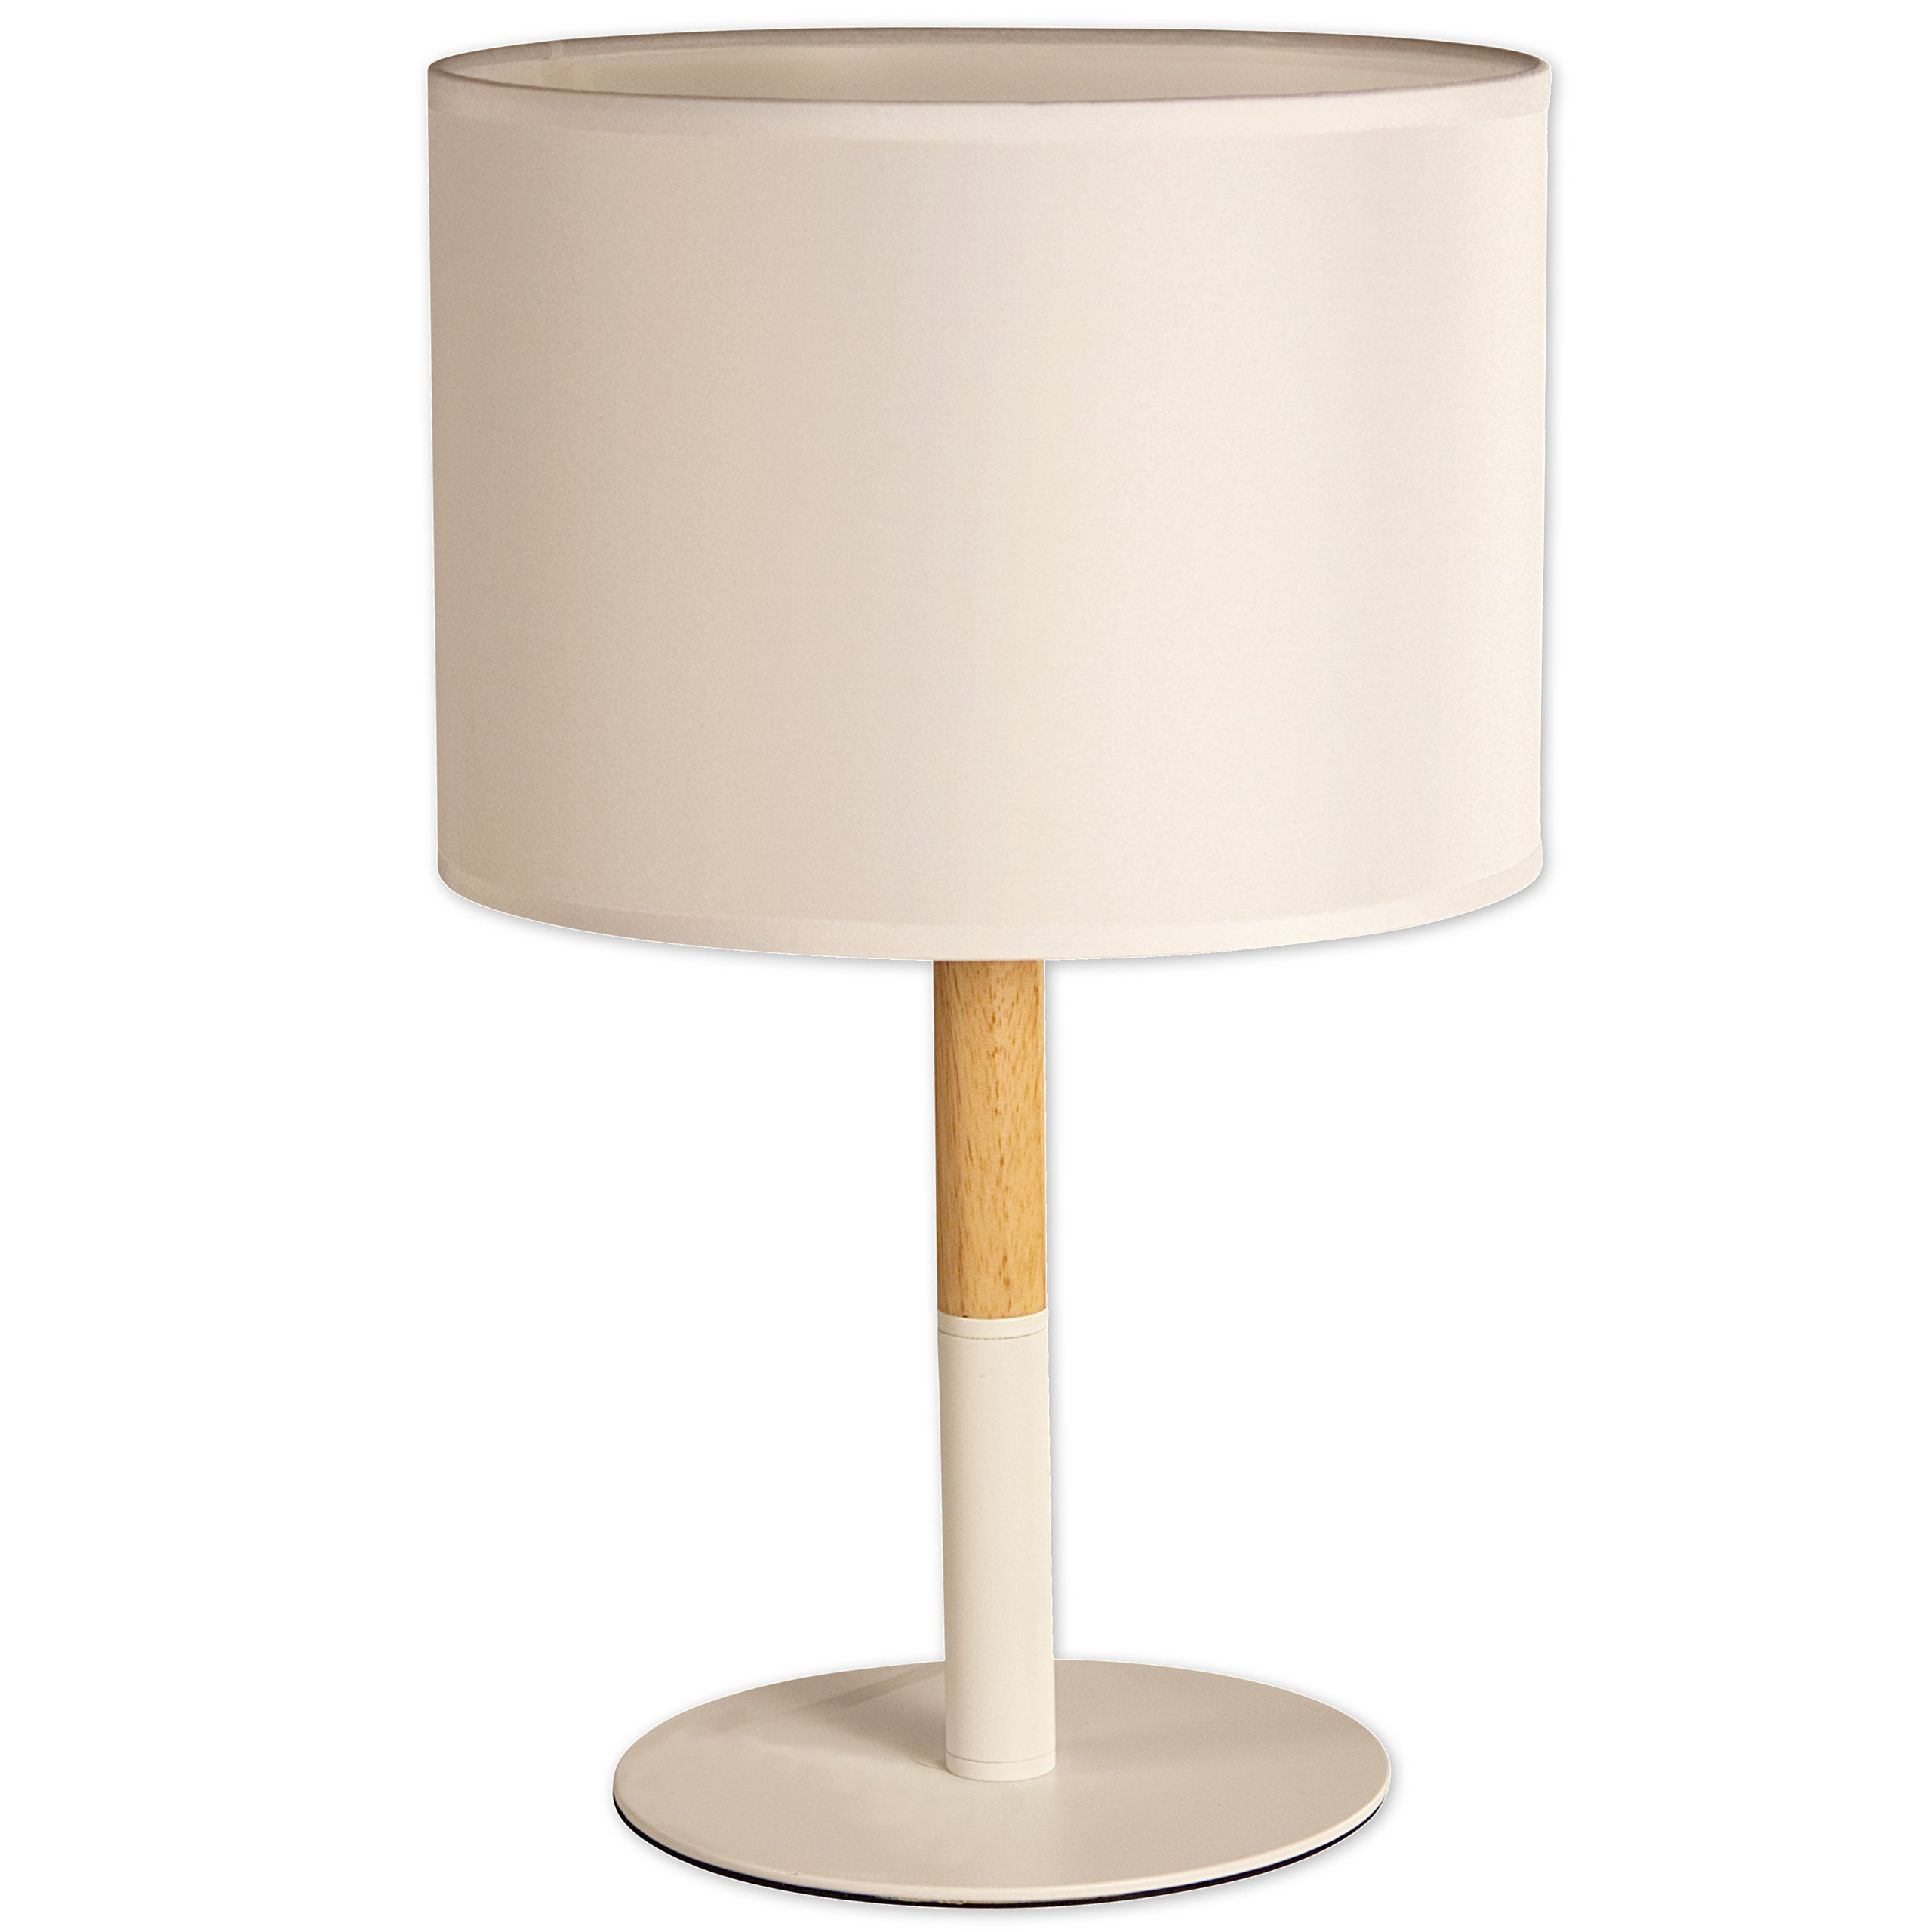 Light Accents Oslo Table Lamp Natural Wood and Metal Table Lamp 15.75'' Tall with Fabric Drum Shade (White)